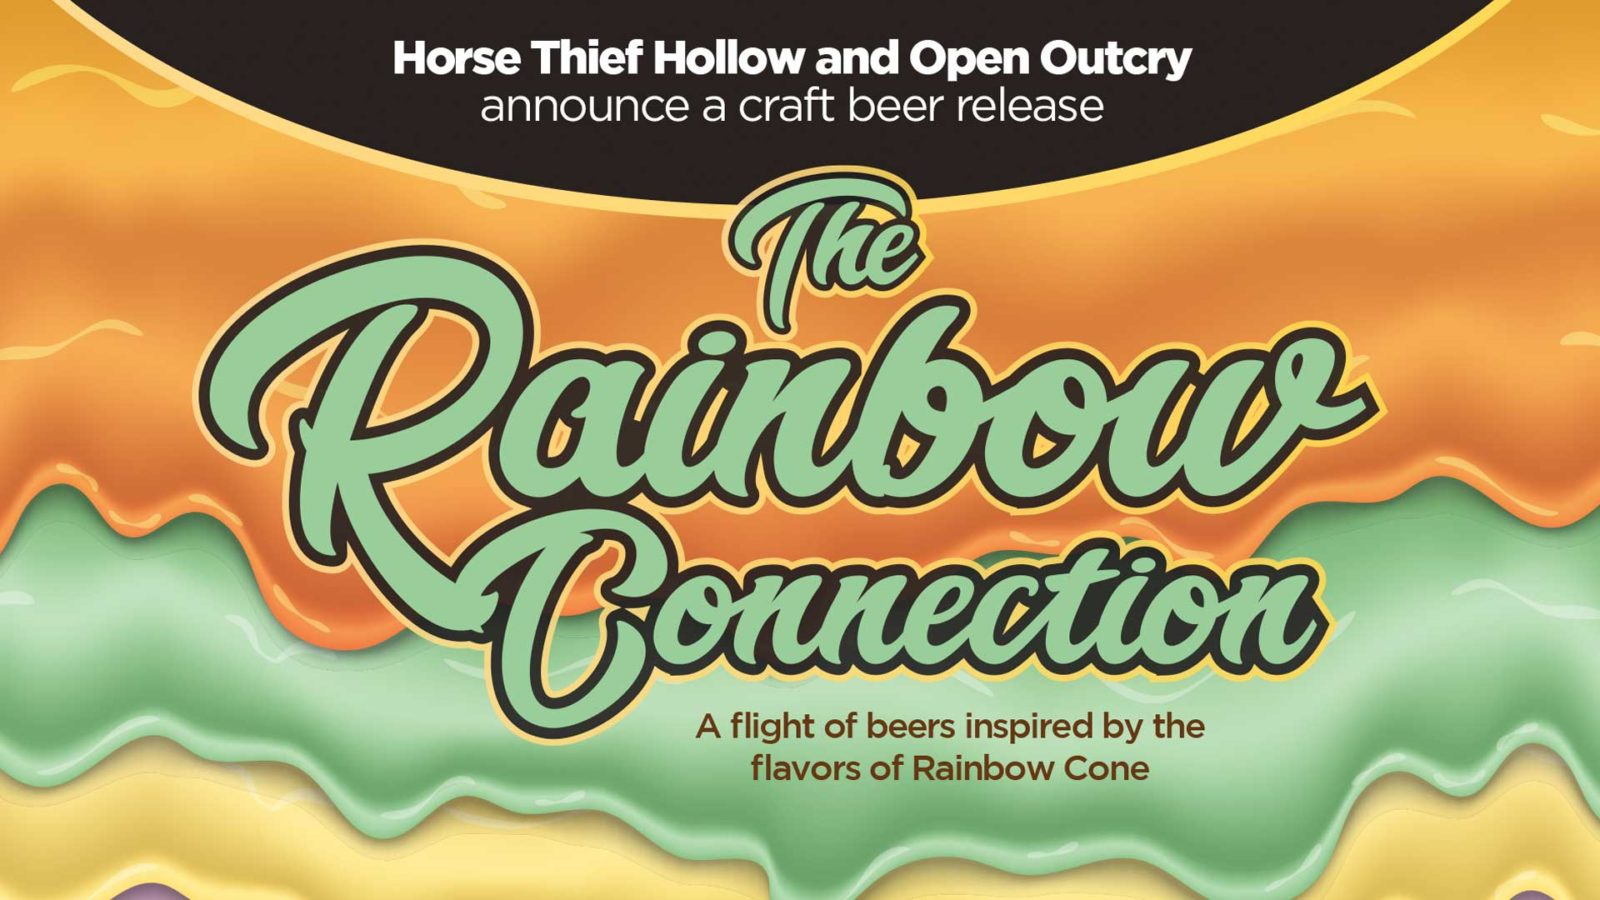 Rainbow Connection craft beer flight is inspired by the flavors of the Rainbow Cone